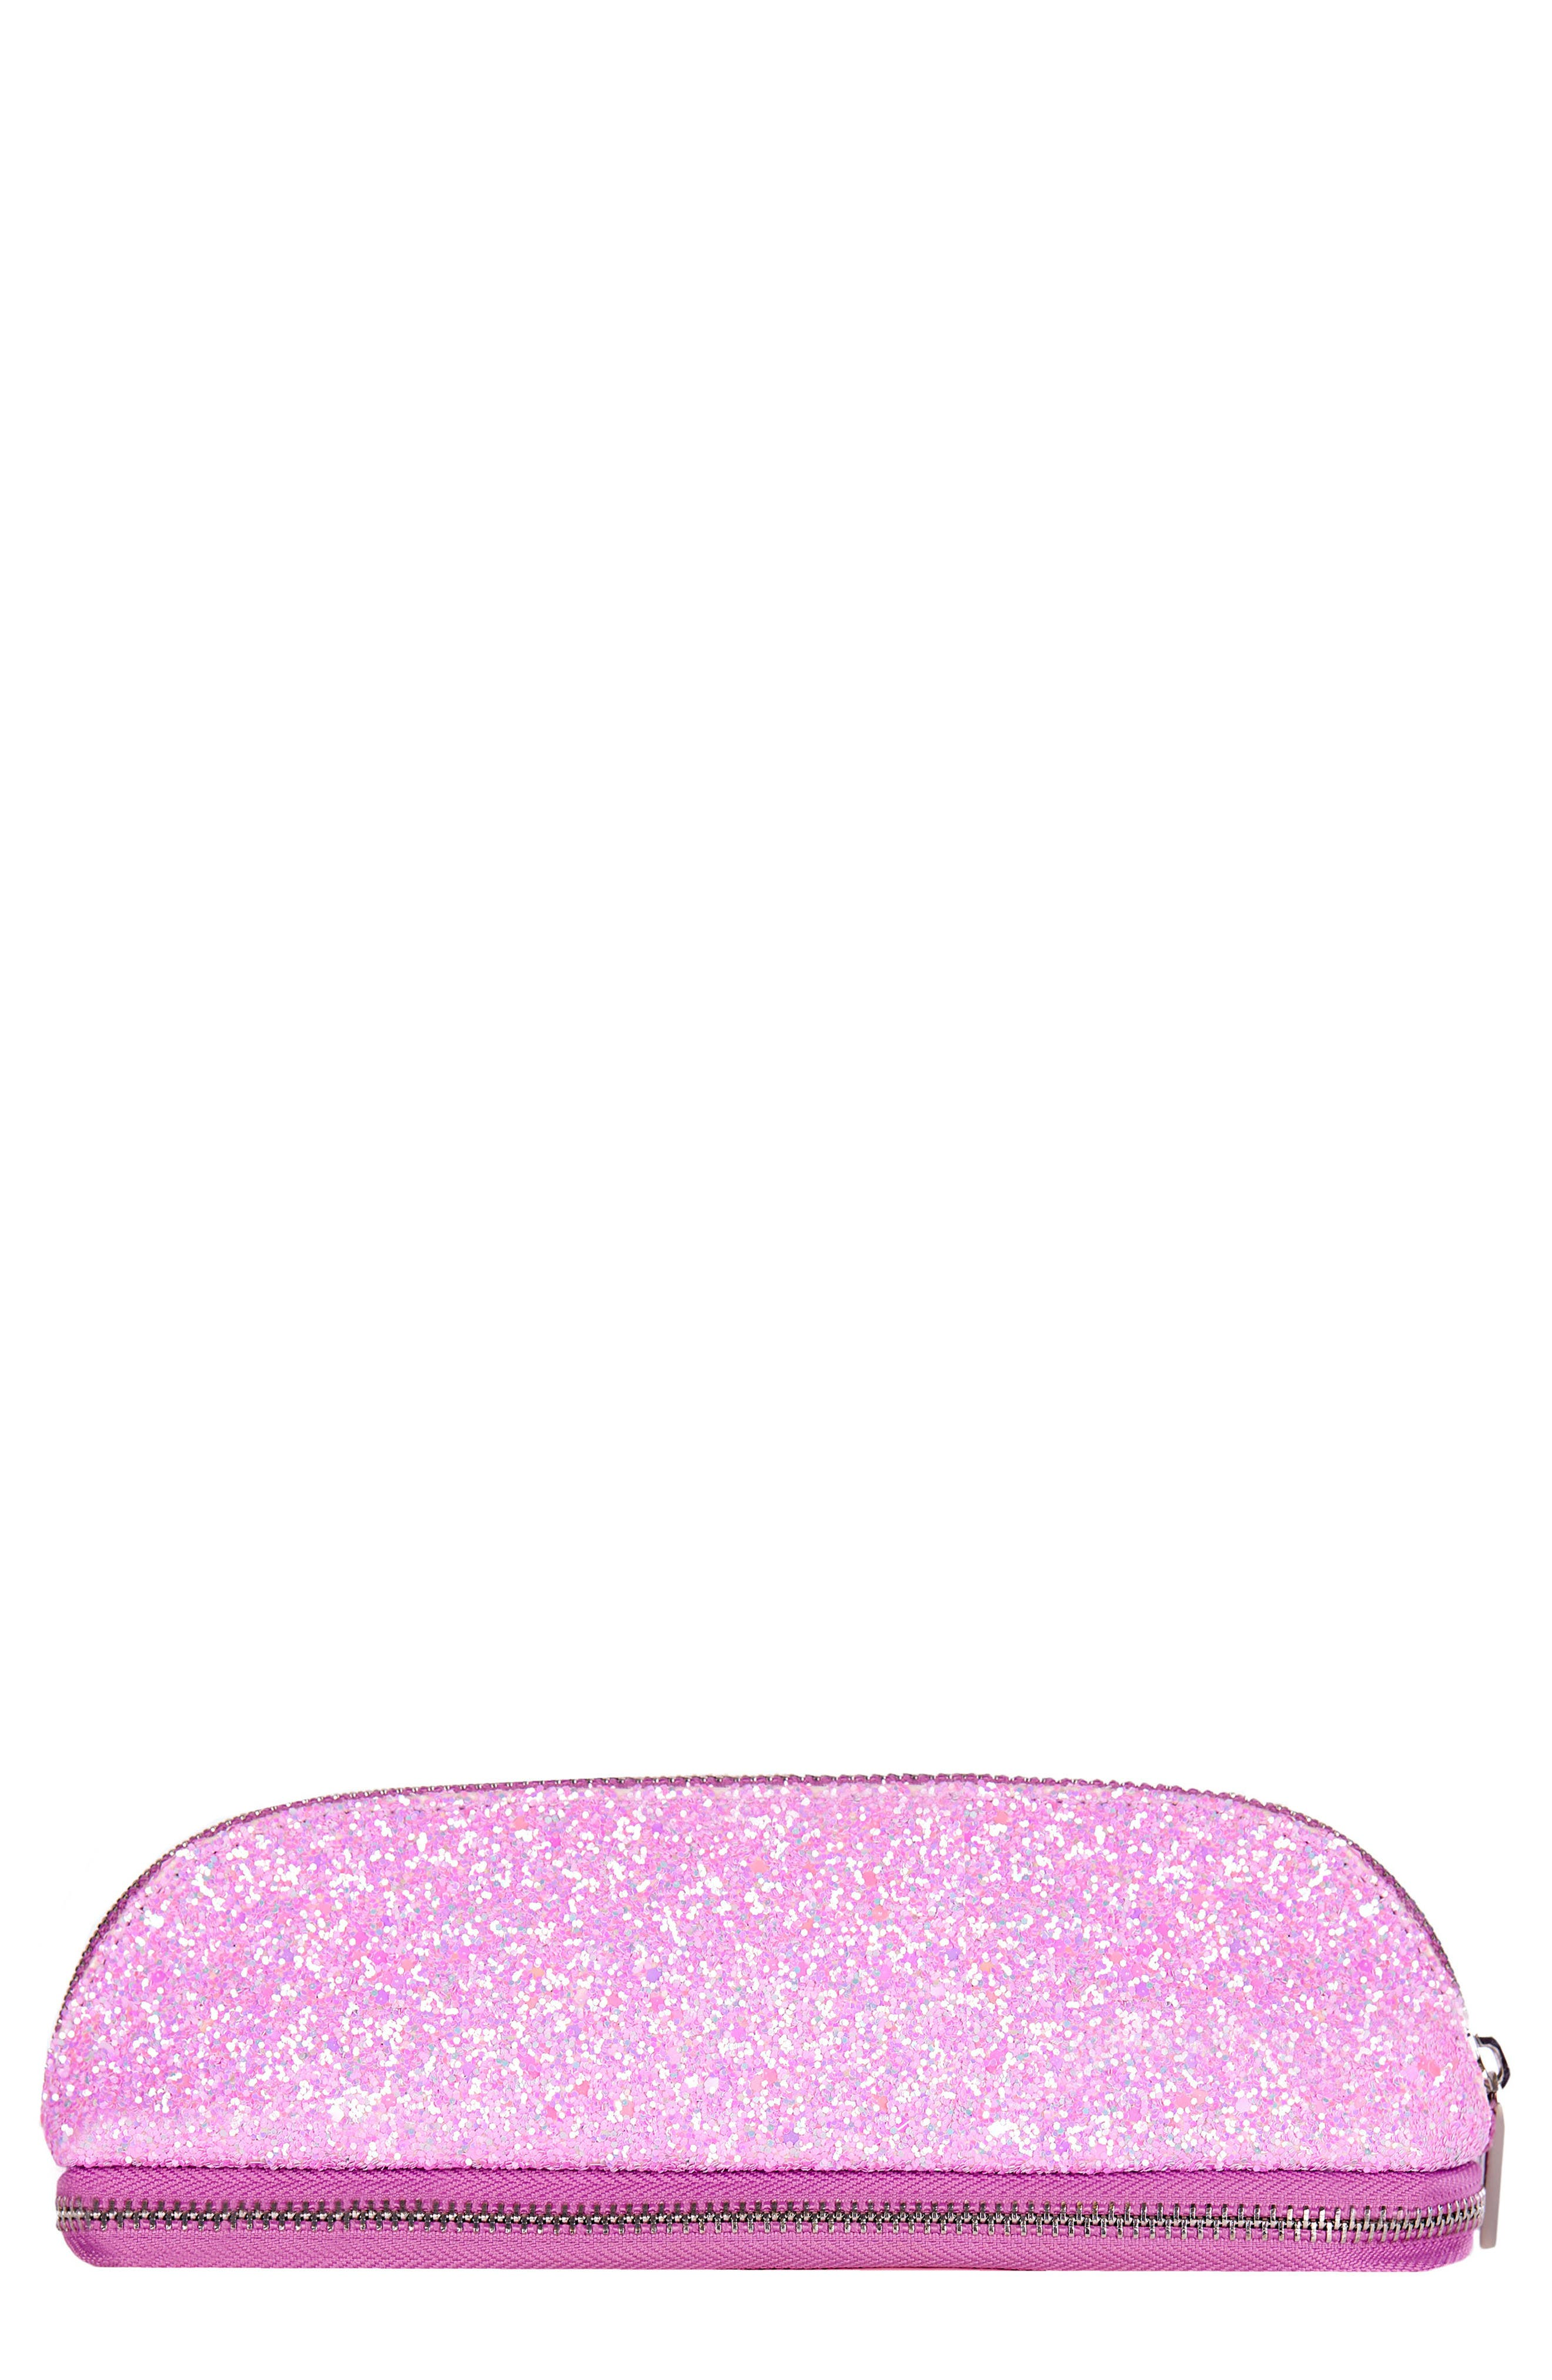 Skinny Dip Glitsy Pink Makeup Brush Cosmetics Case,                         Main,                         color, No Color